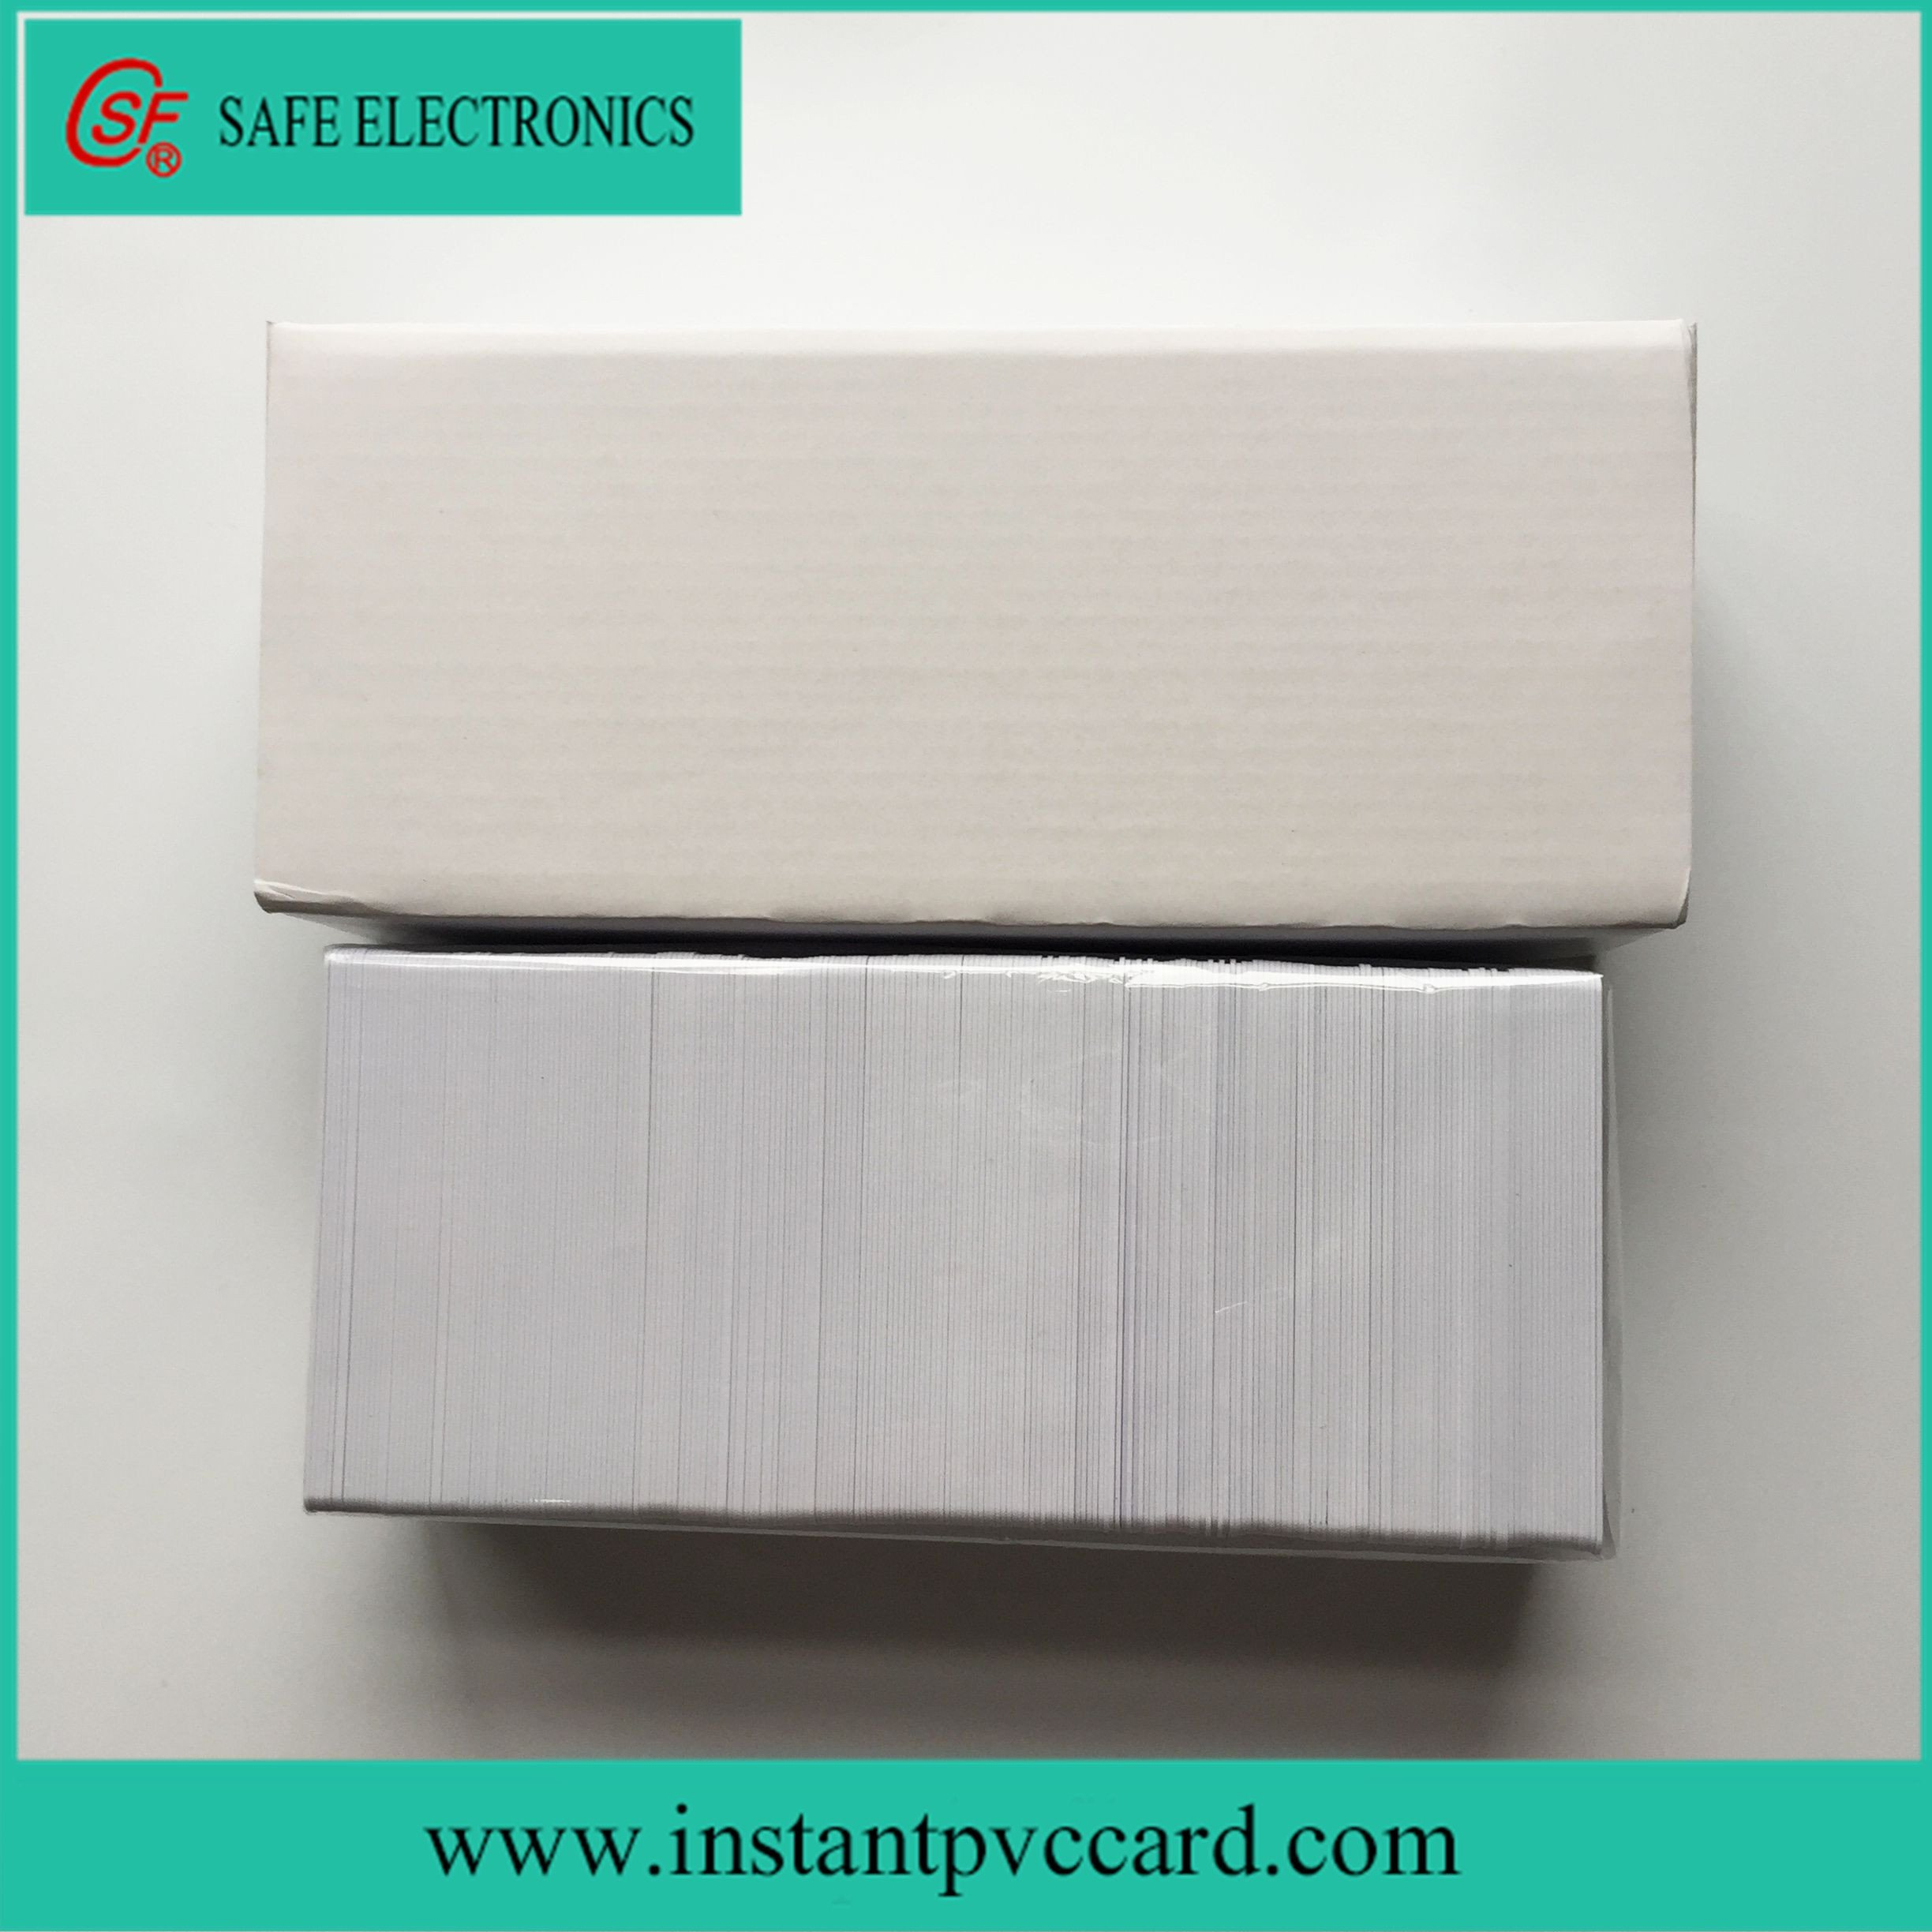 White Magnetic Stripe Card with Sle4442 Chip